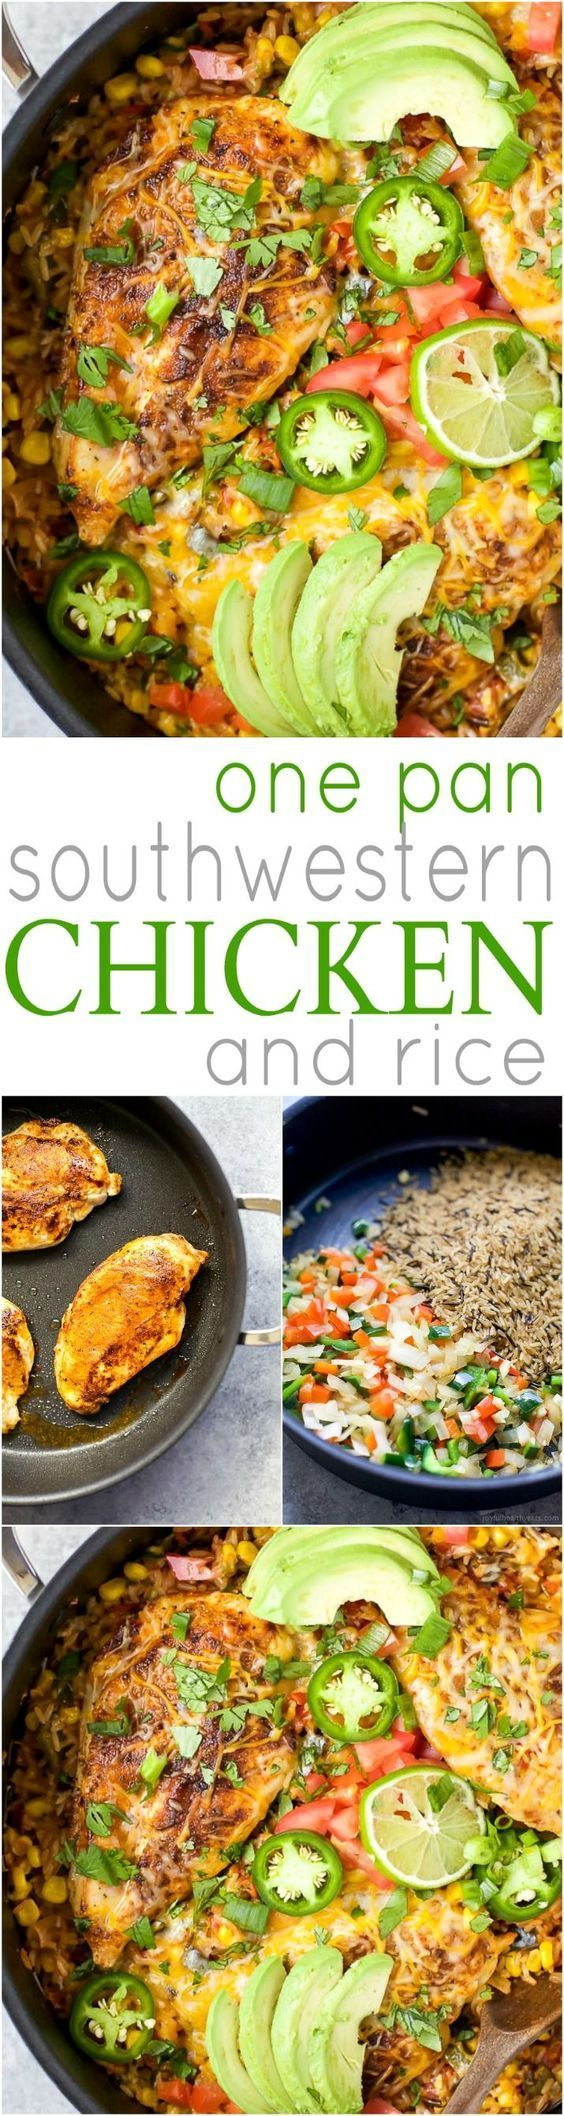 ONE PAN SOUTHWESTERN CHICKEN AND RICE - an easy healthy dinner recipe all made in one pan for easy cleanup! It's perfect for the family and bursting with flavor!